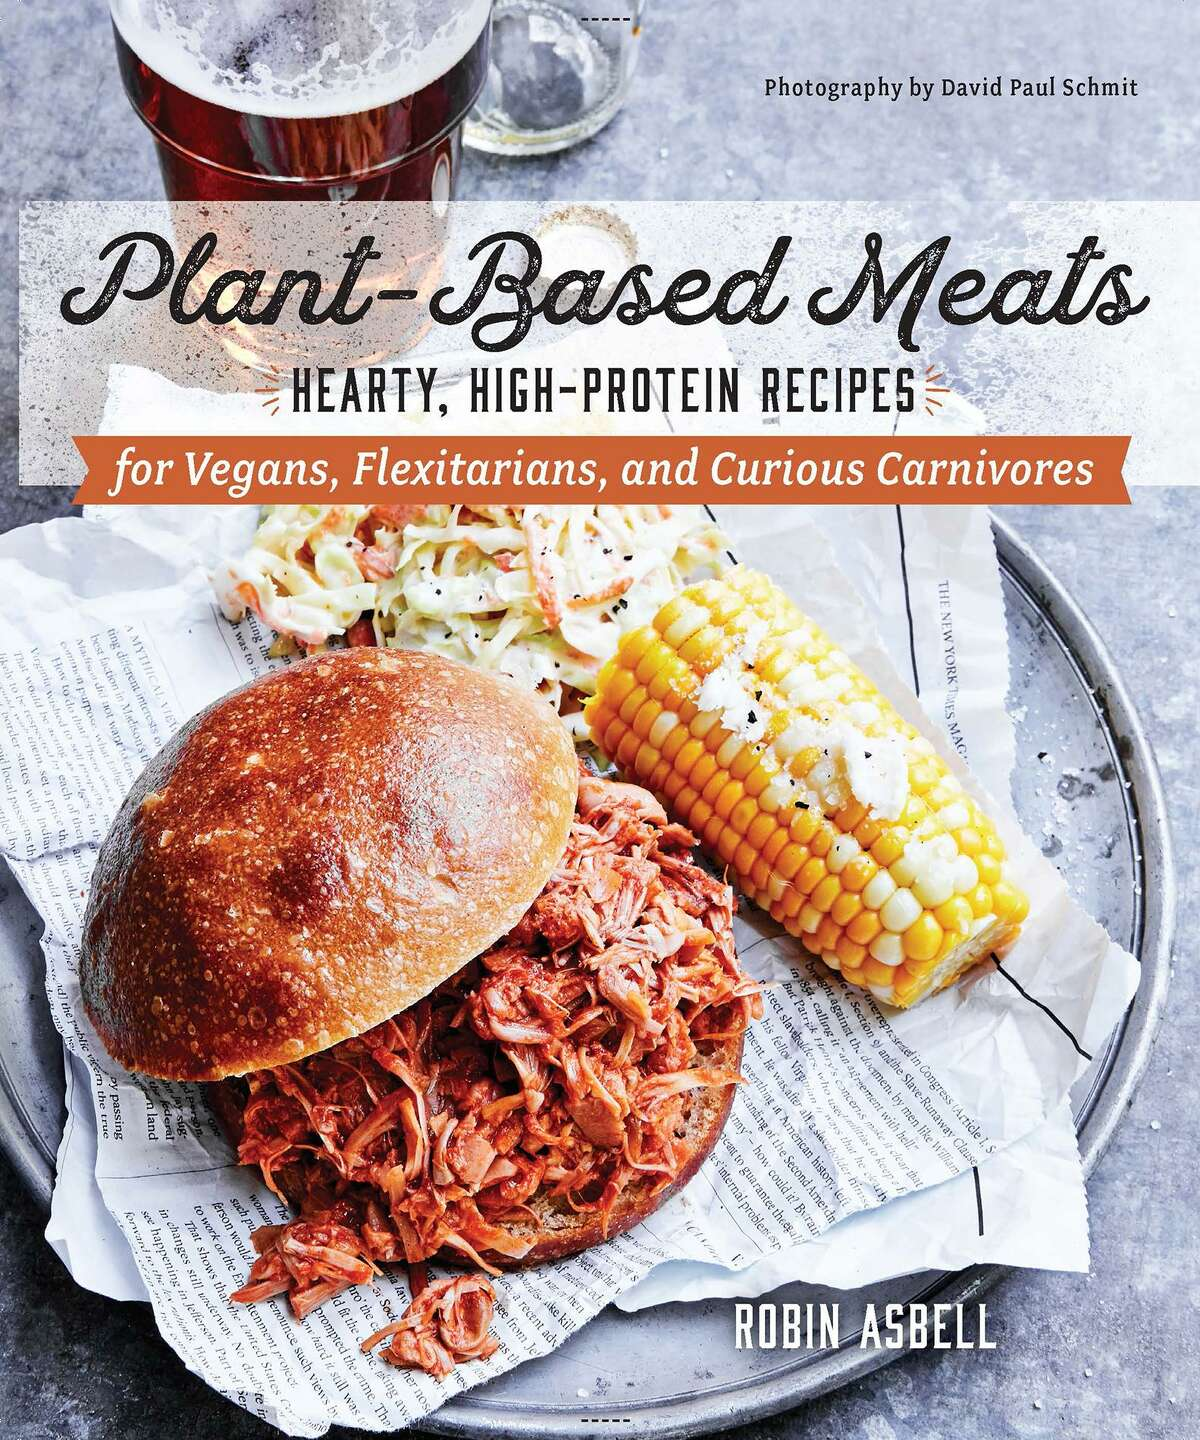 """""""Plant-Based Meats"""" by Robin Asbell (Countryman Press)"""